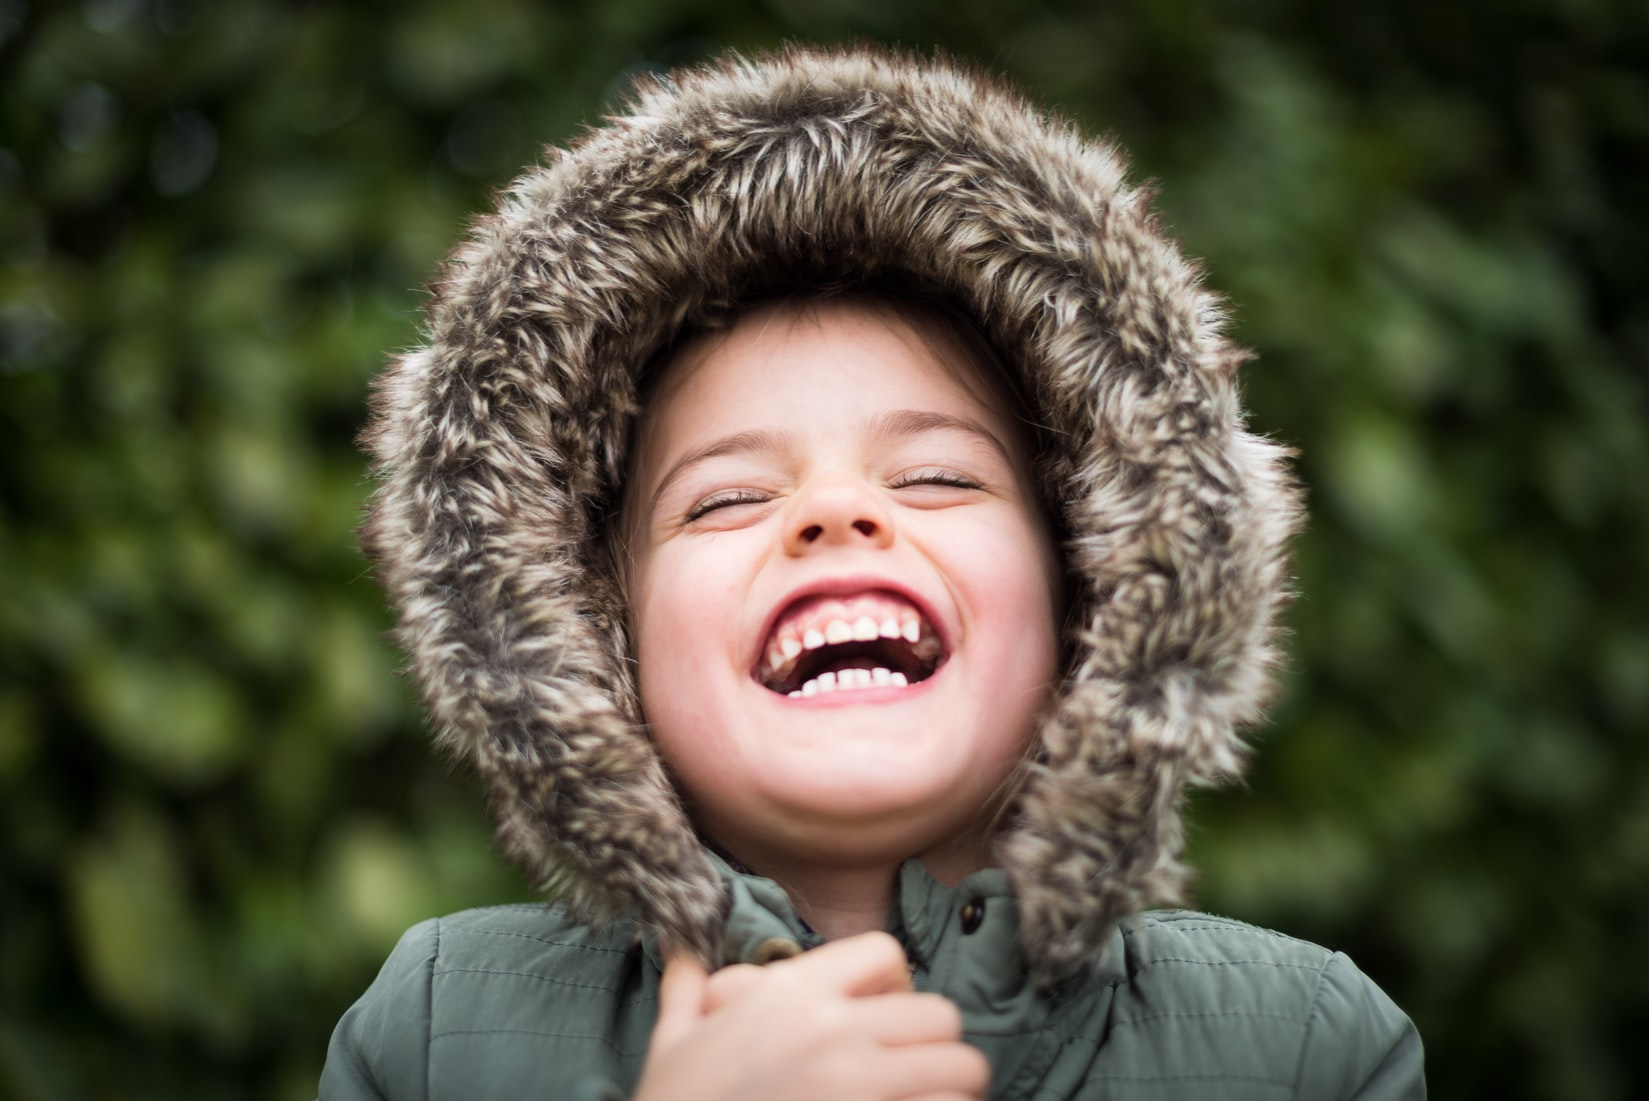 6 Tips to Ease Your Child's Dental Anxiety